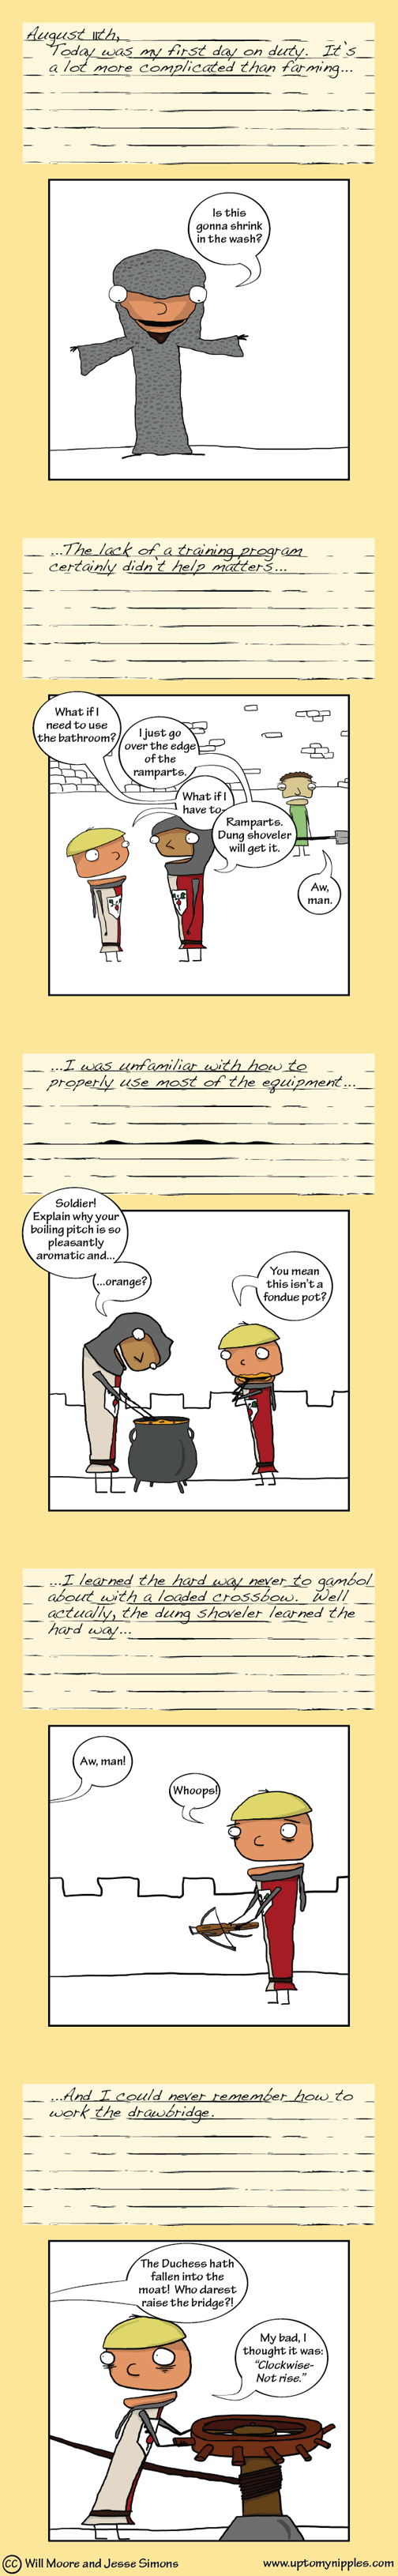 Diary of a Castle Guard (2/3) comic